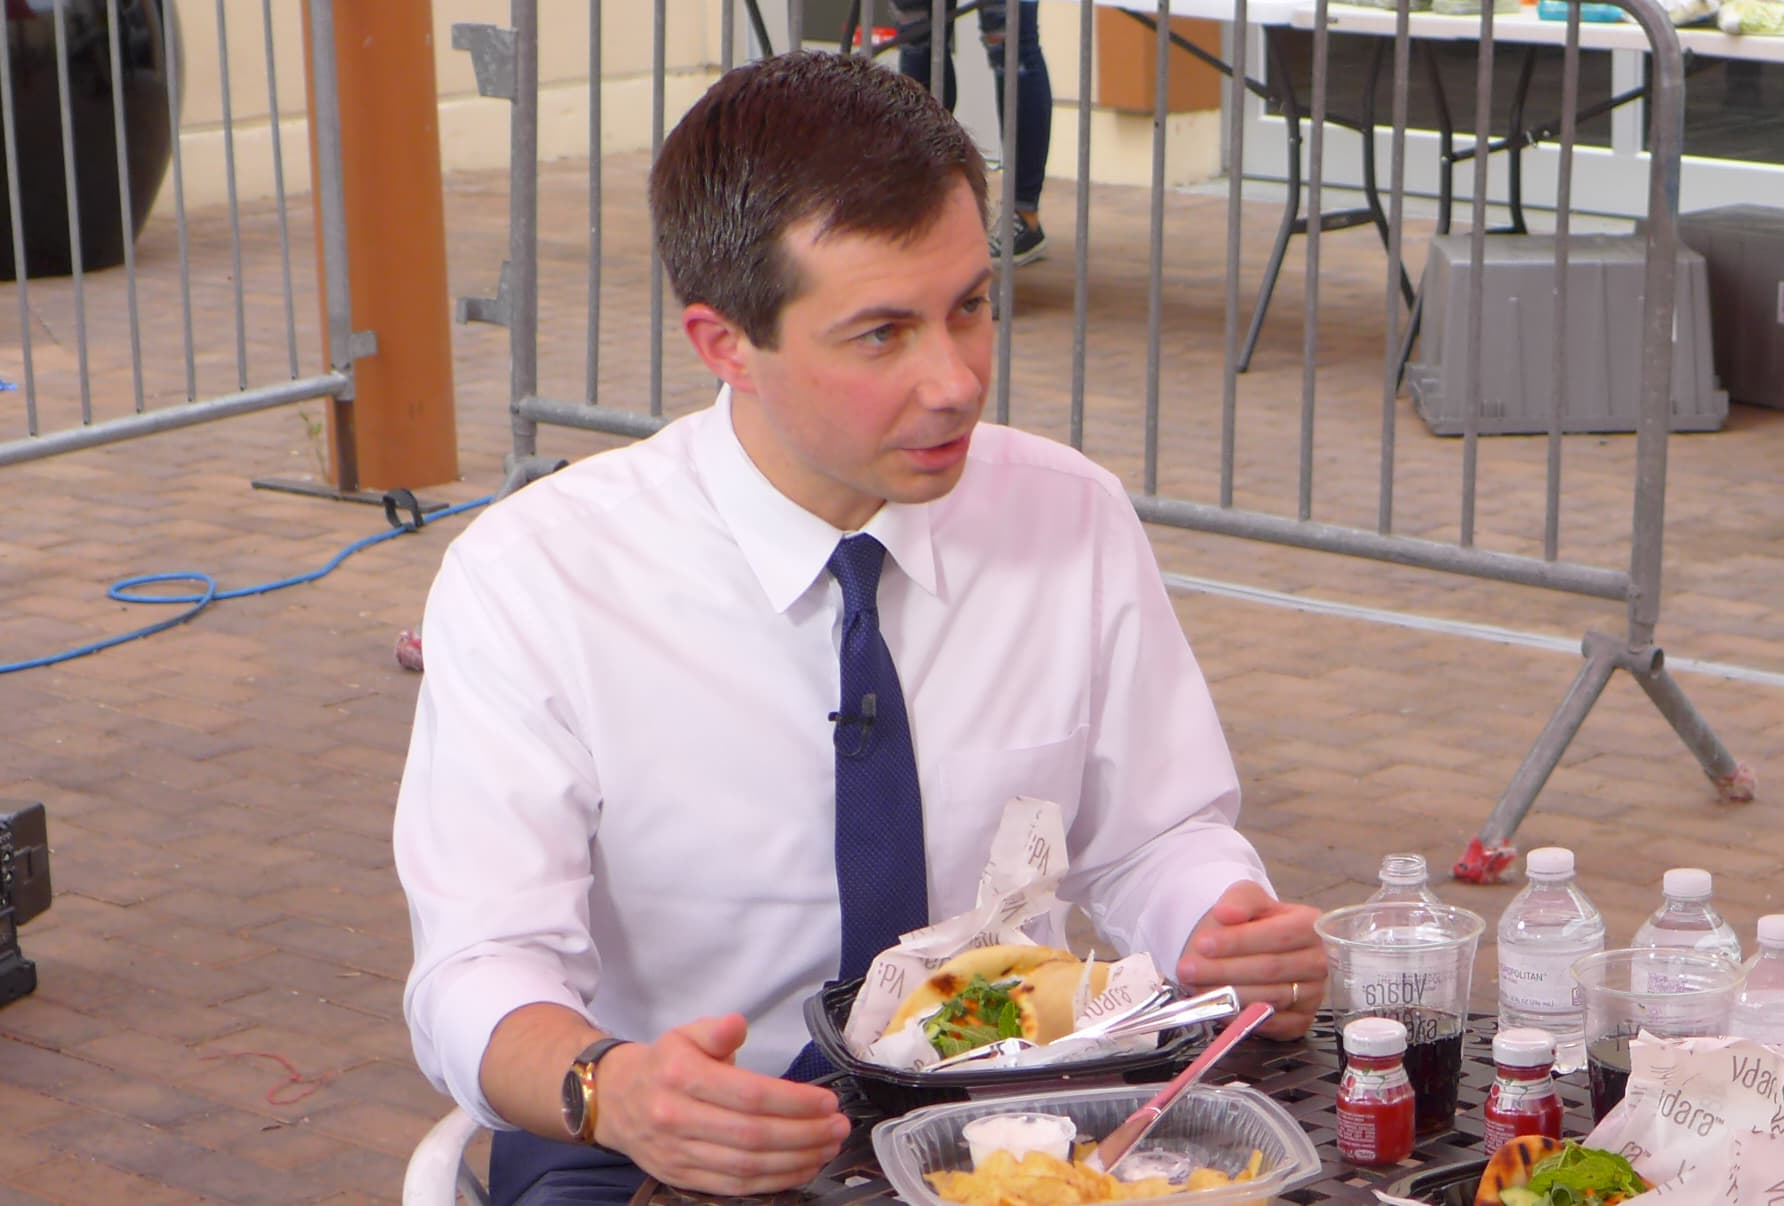 Democratic 2020 hopeful Pete Buttigieg on Trump: 'I think the government's been in some kind of crisis ever since this president arrived'